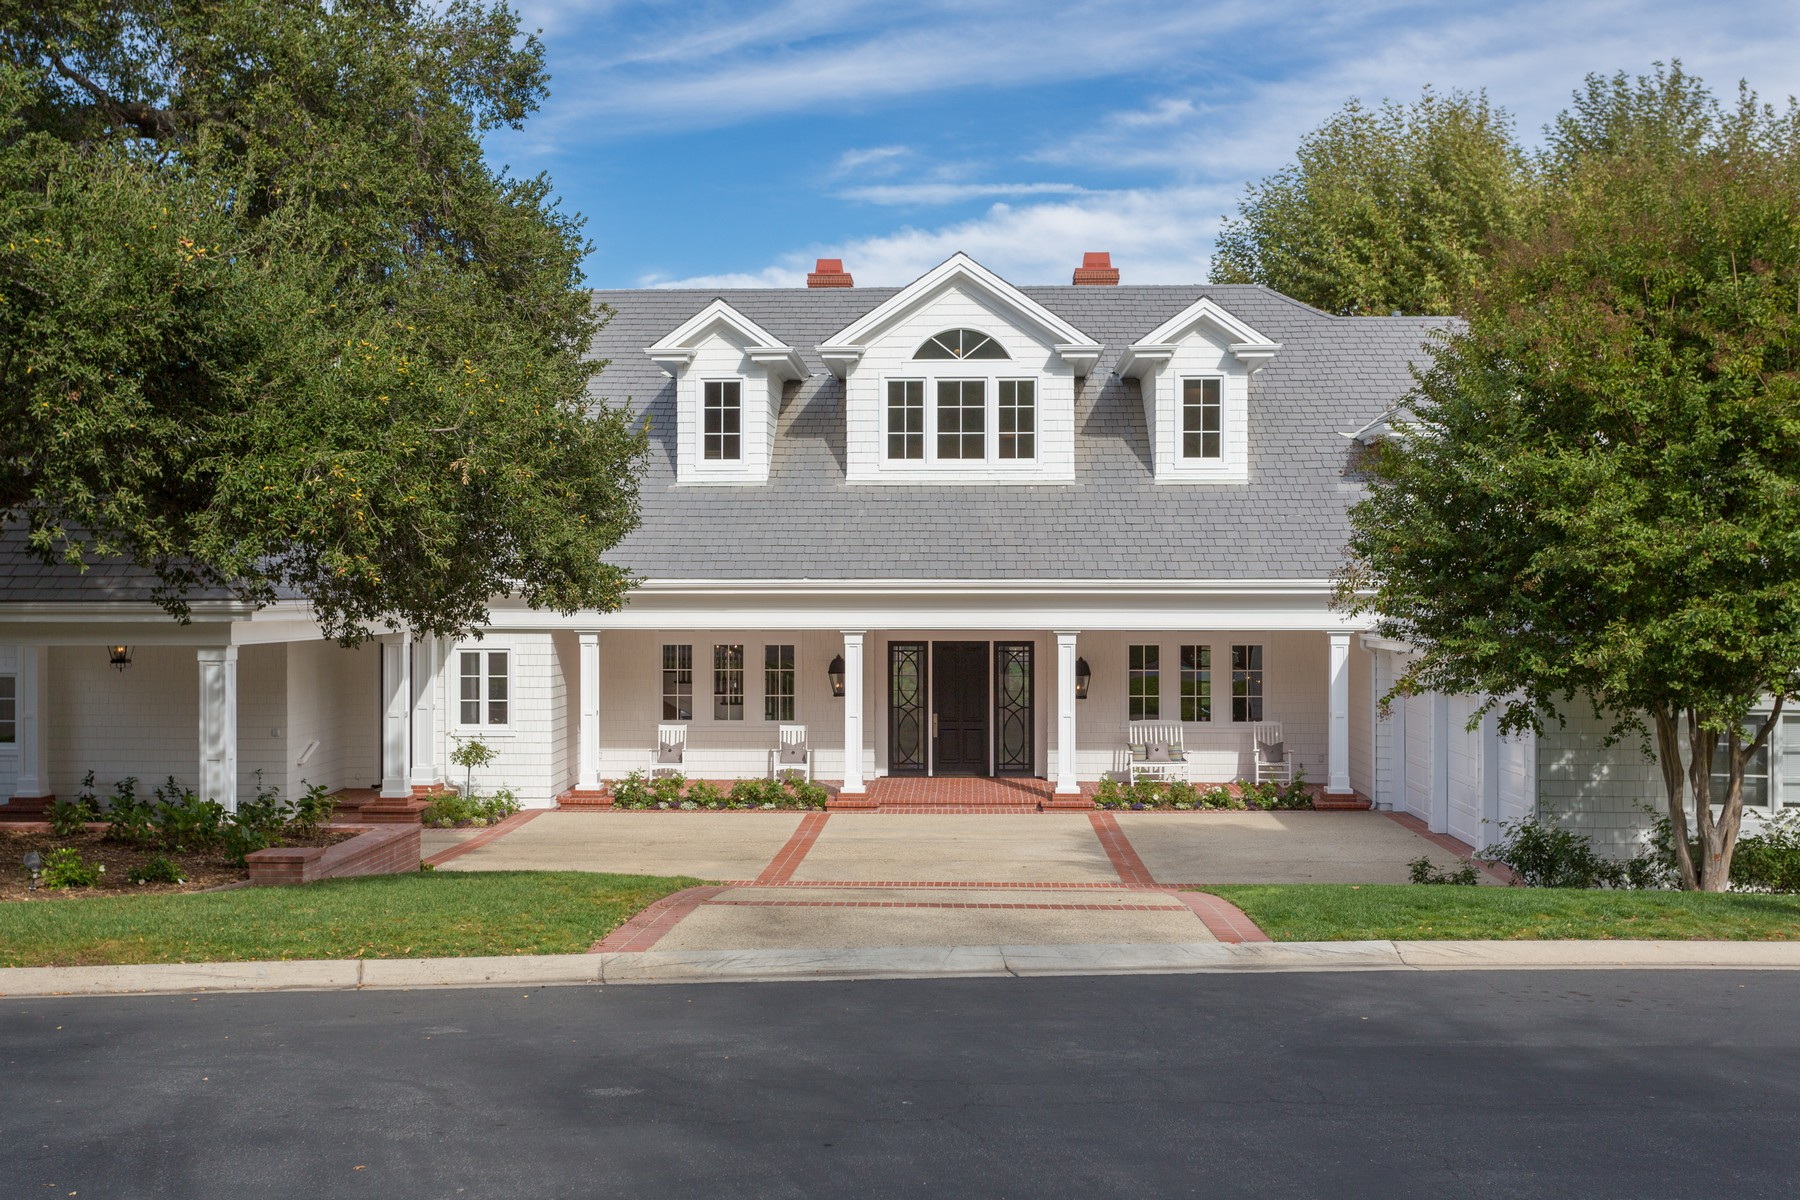 Single Family Home for Sale at Garden Drive 291 Garden Drive Thousand Oaks, California, 91361 United States